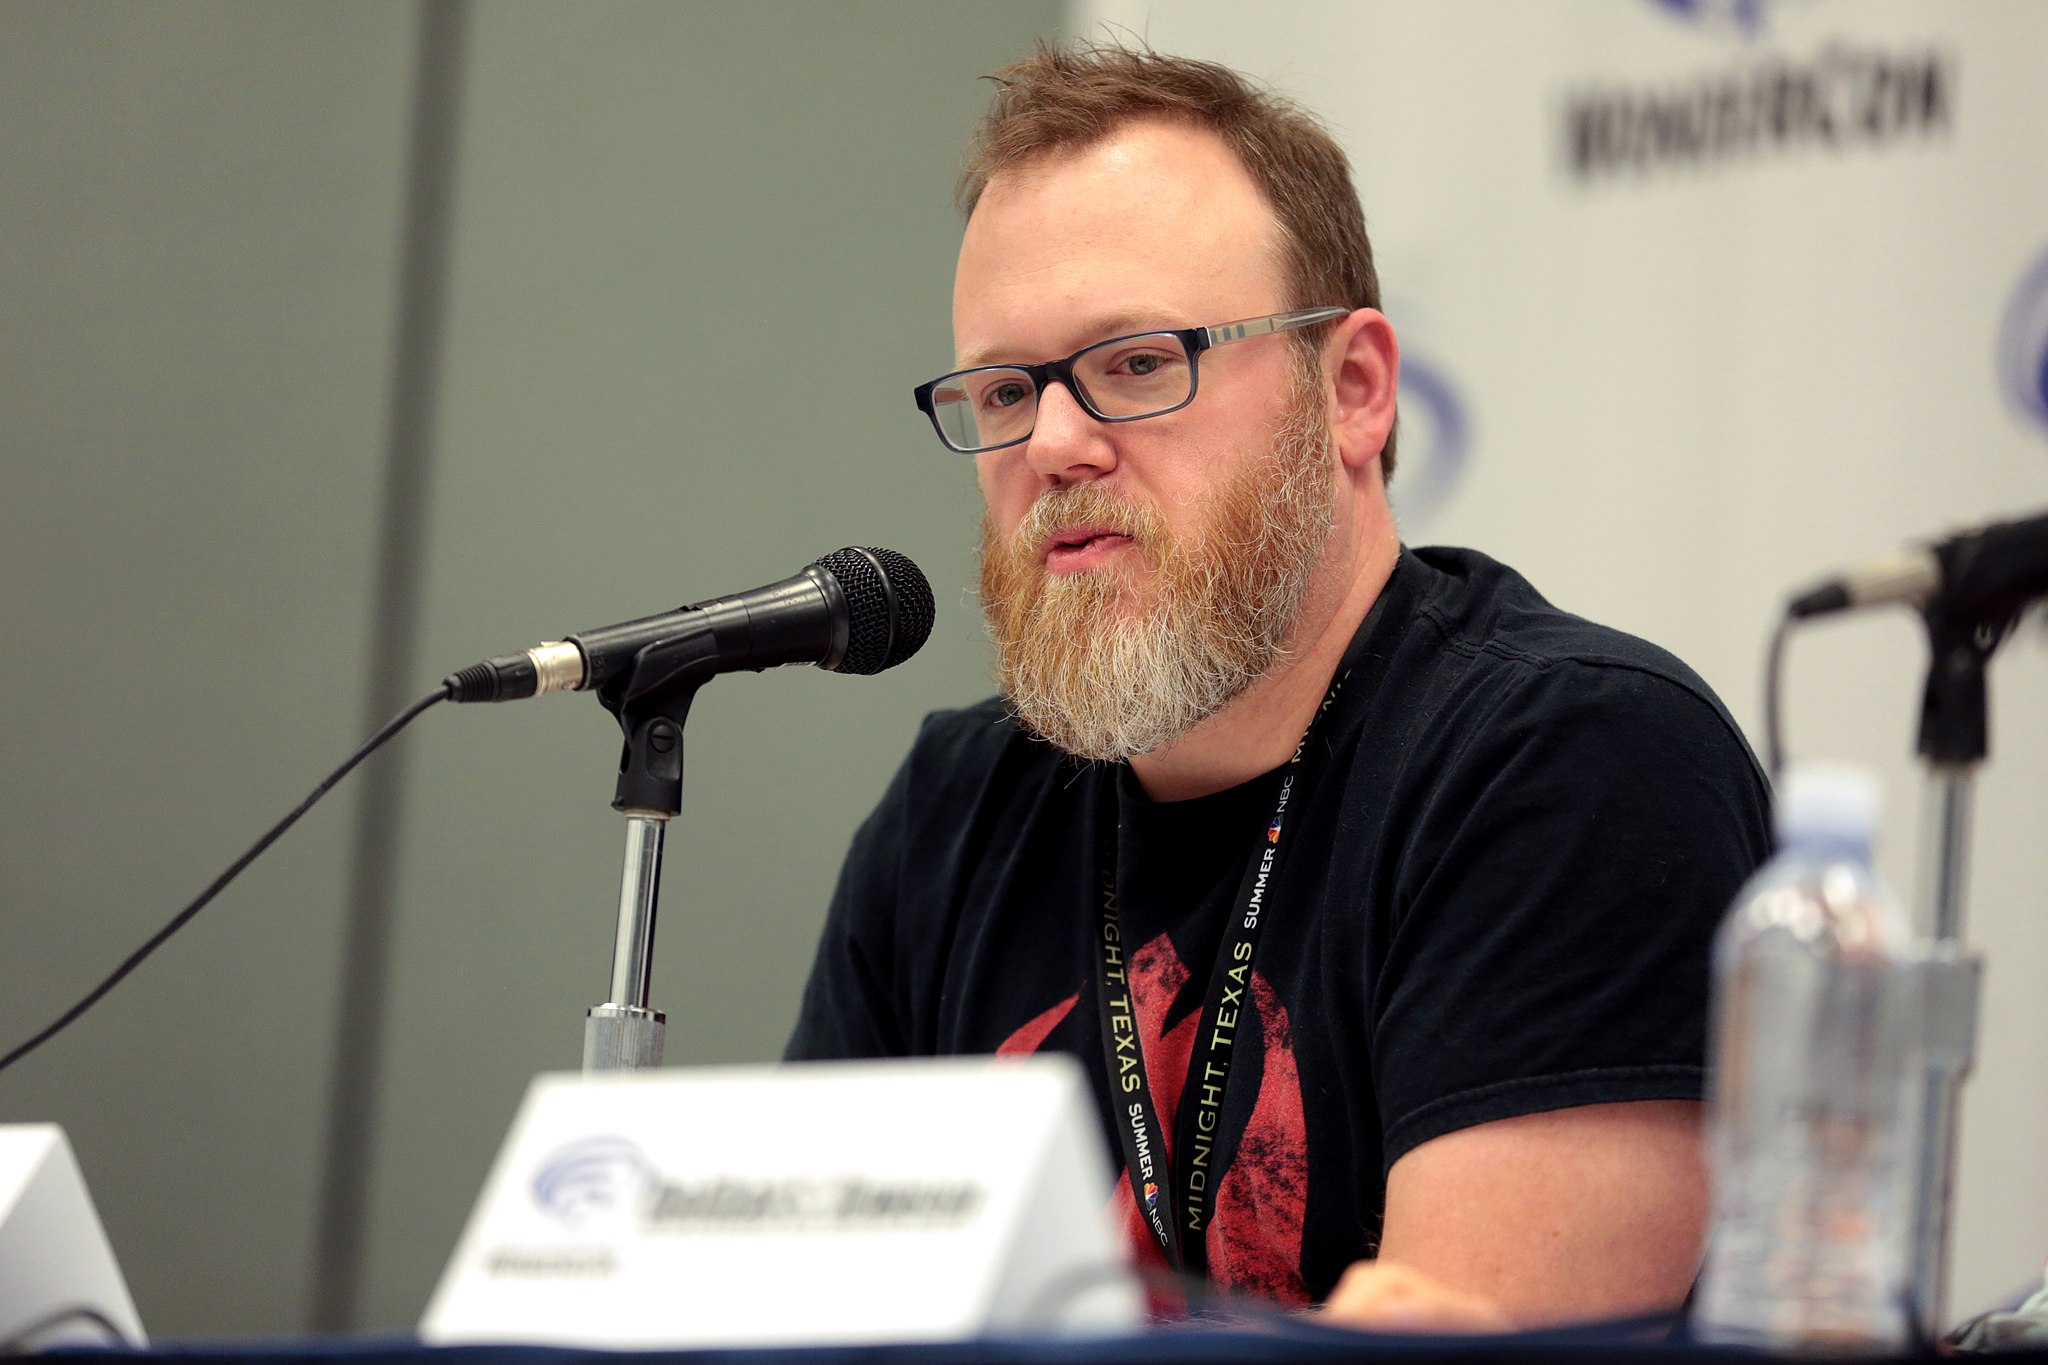 Chuck Wendig speaks at a convention about his work